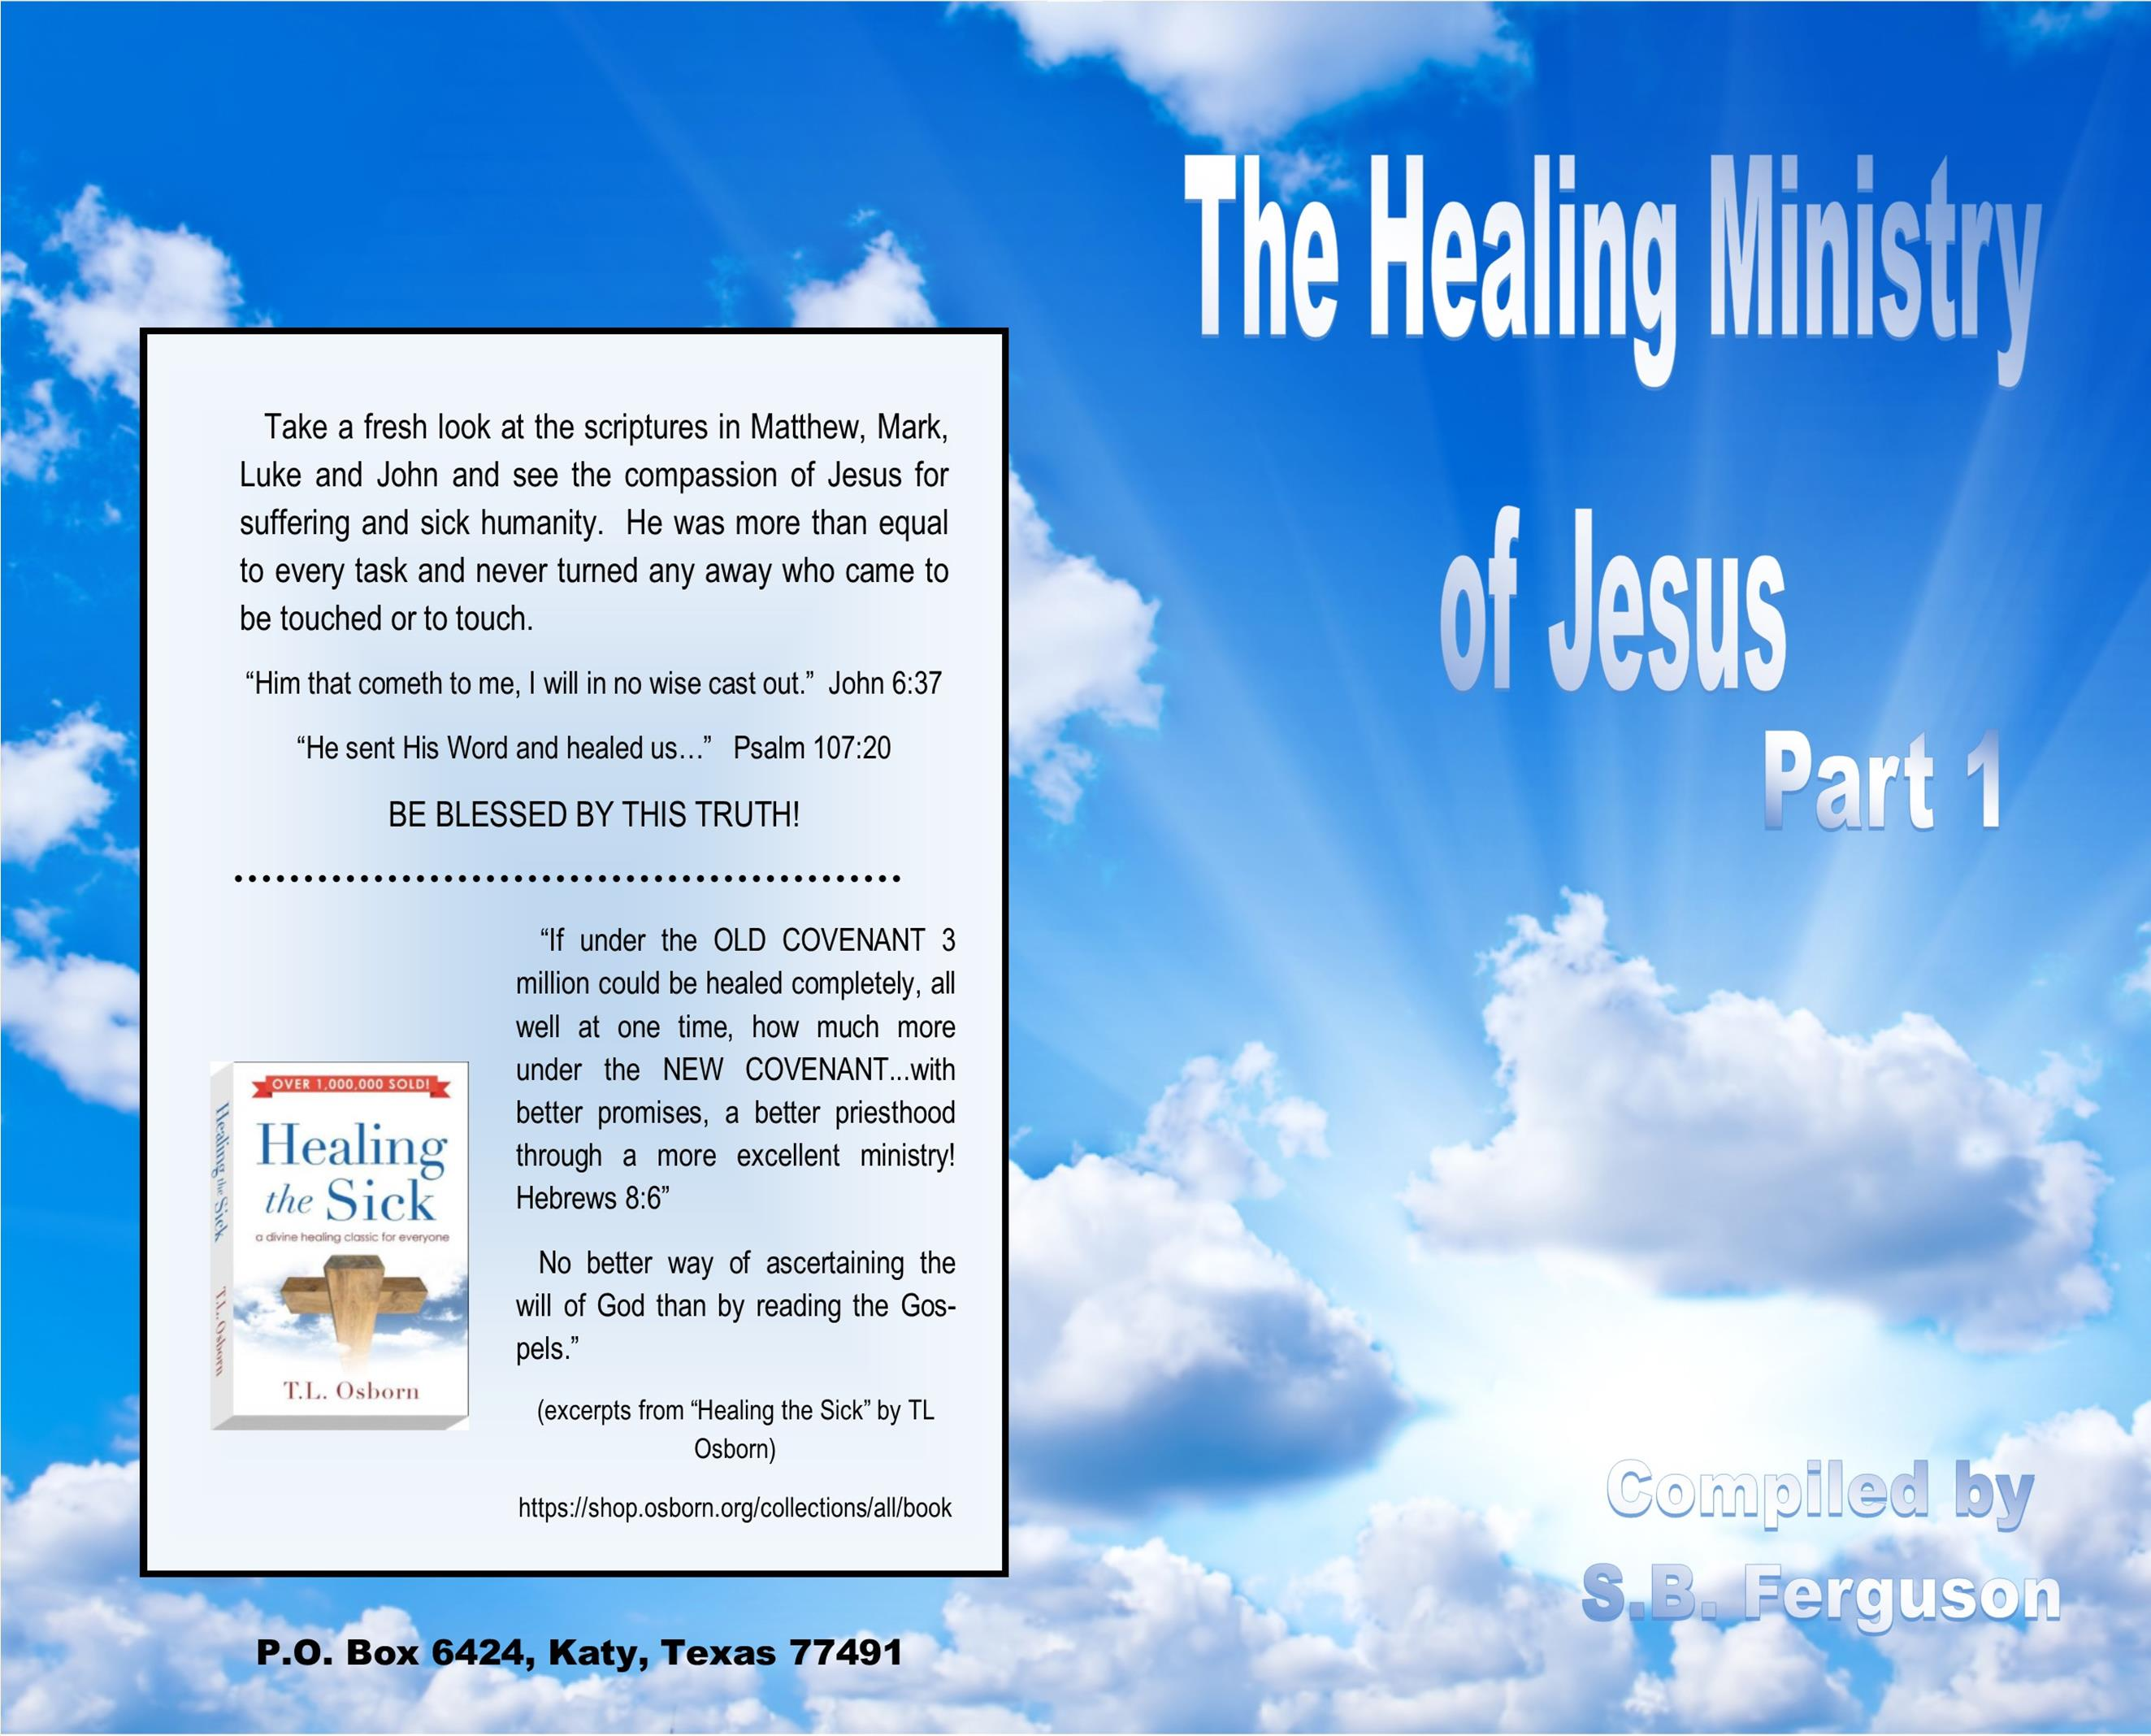 The Healing Ministry of Jesus Part 1 cover image